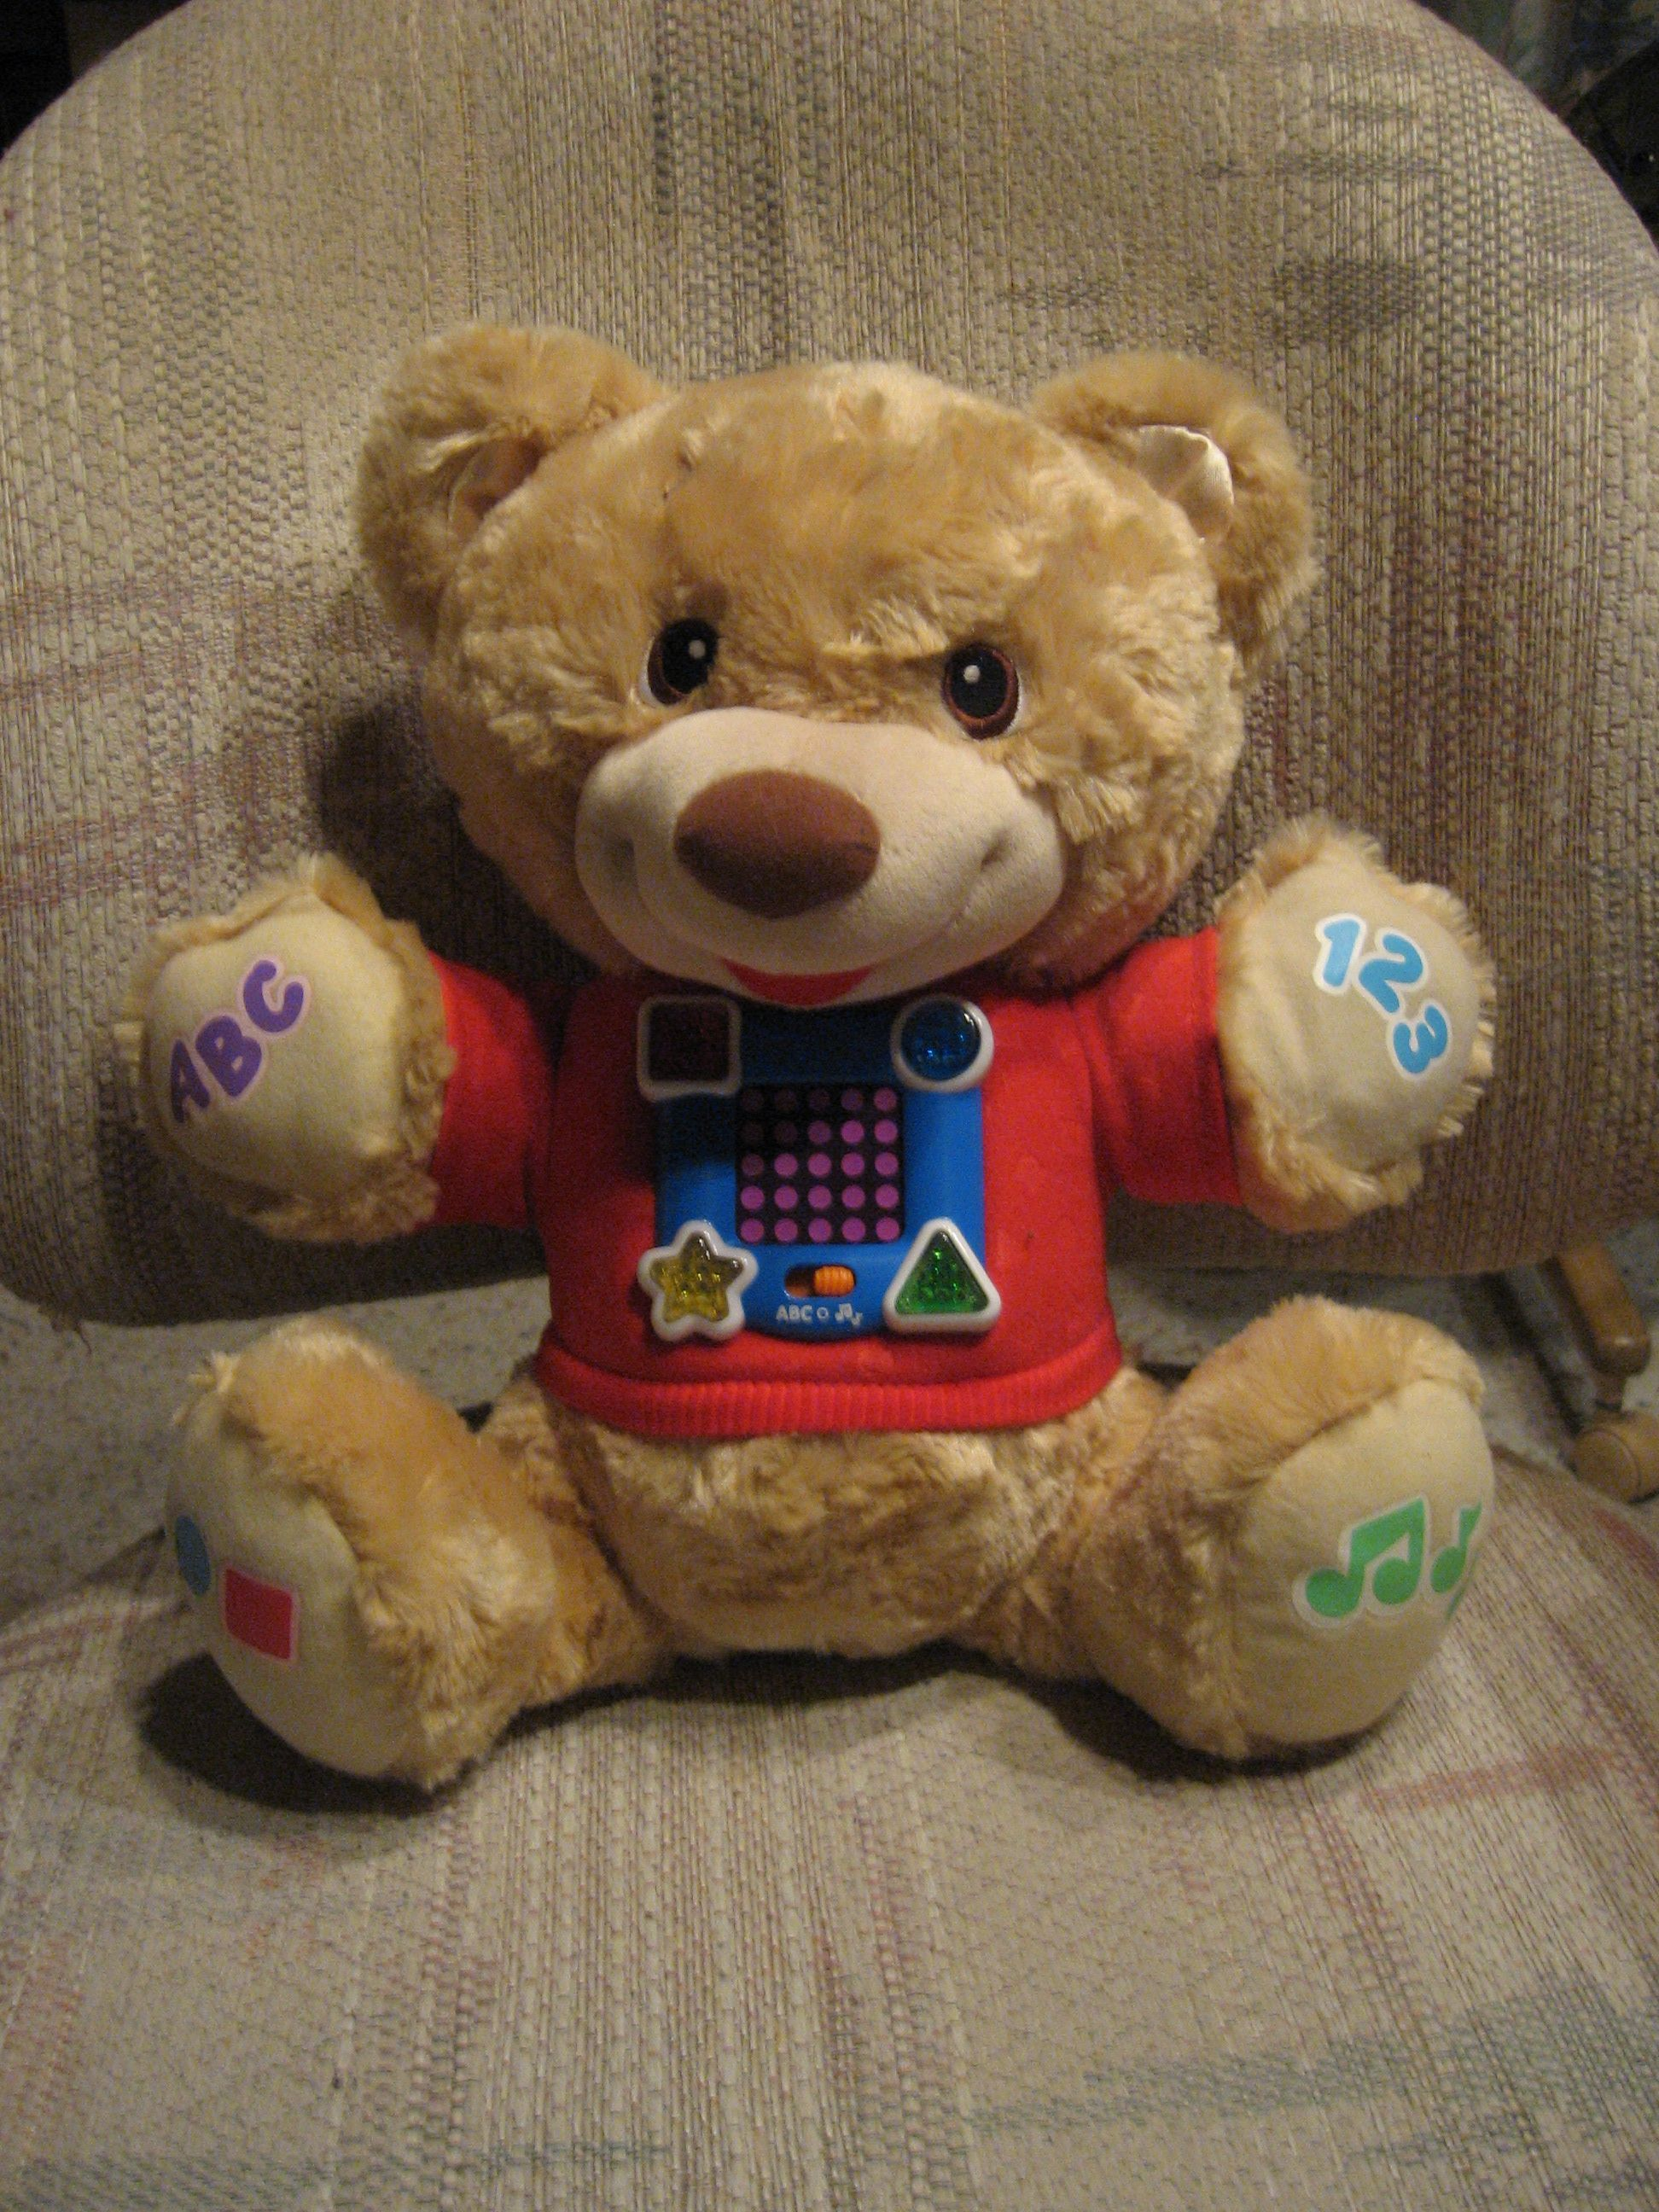 This is a Bear Plush by Fisher Price that sings, talks, says the alphabet, counts numbers, says and shows colors and shapes! I got it for my friend, Mark's great-nephew, Winnie!